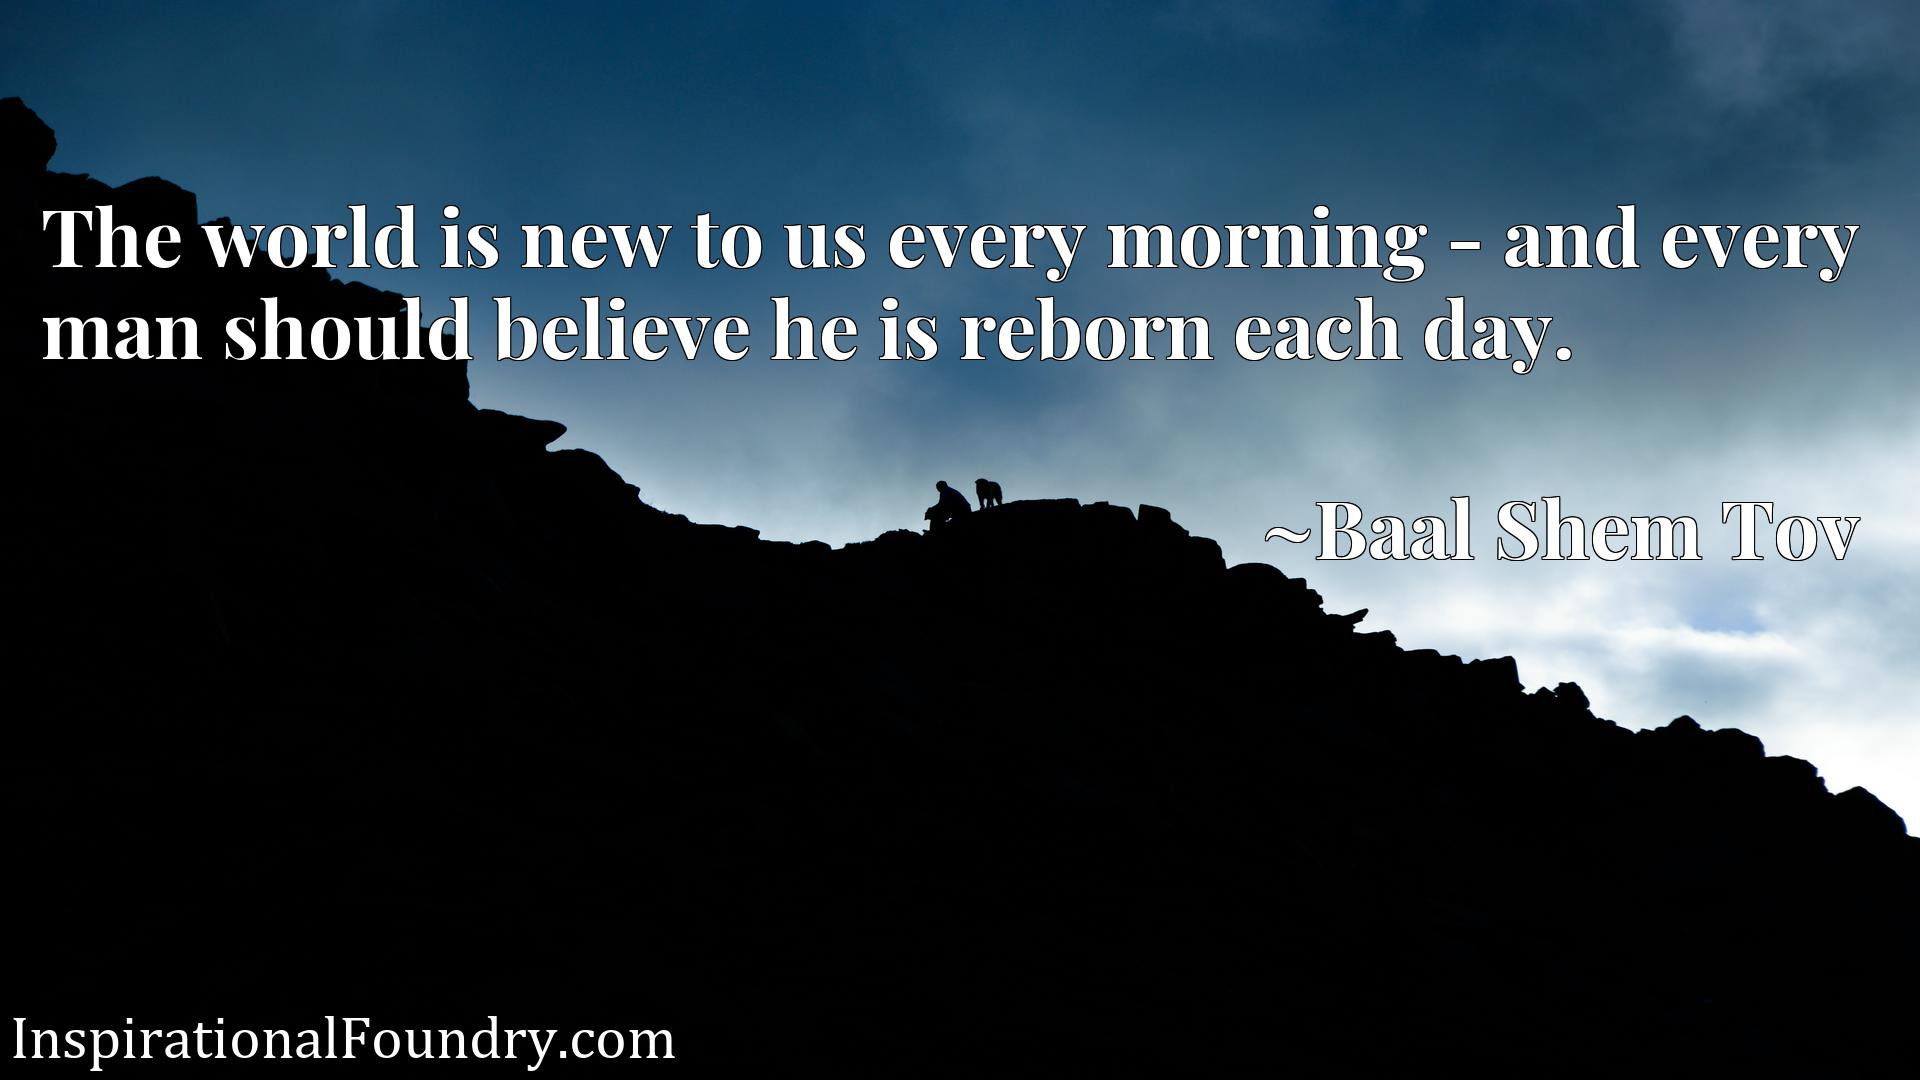 The world is new to us every morning - and every man should believe he is reborn each day.